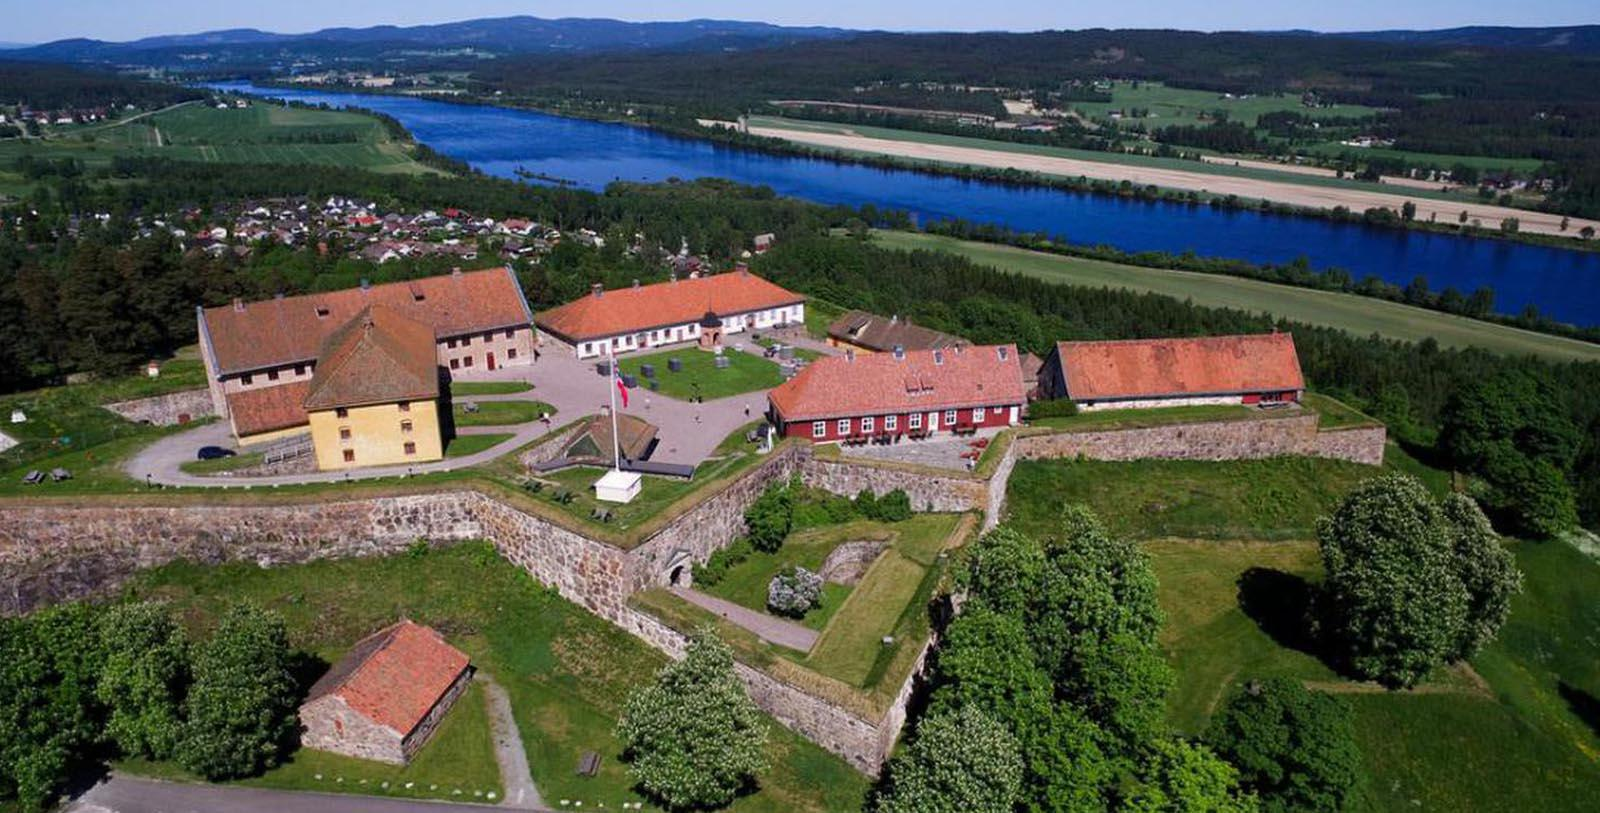 Image of Hotel Exterior Festningen Castle Hotel & Resort, 1673, Member of Historic Hotels Worldwide, in Kongsvinger, Norway, Overview